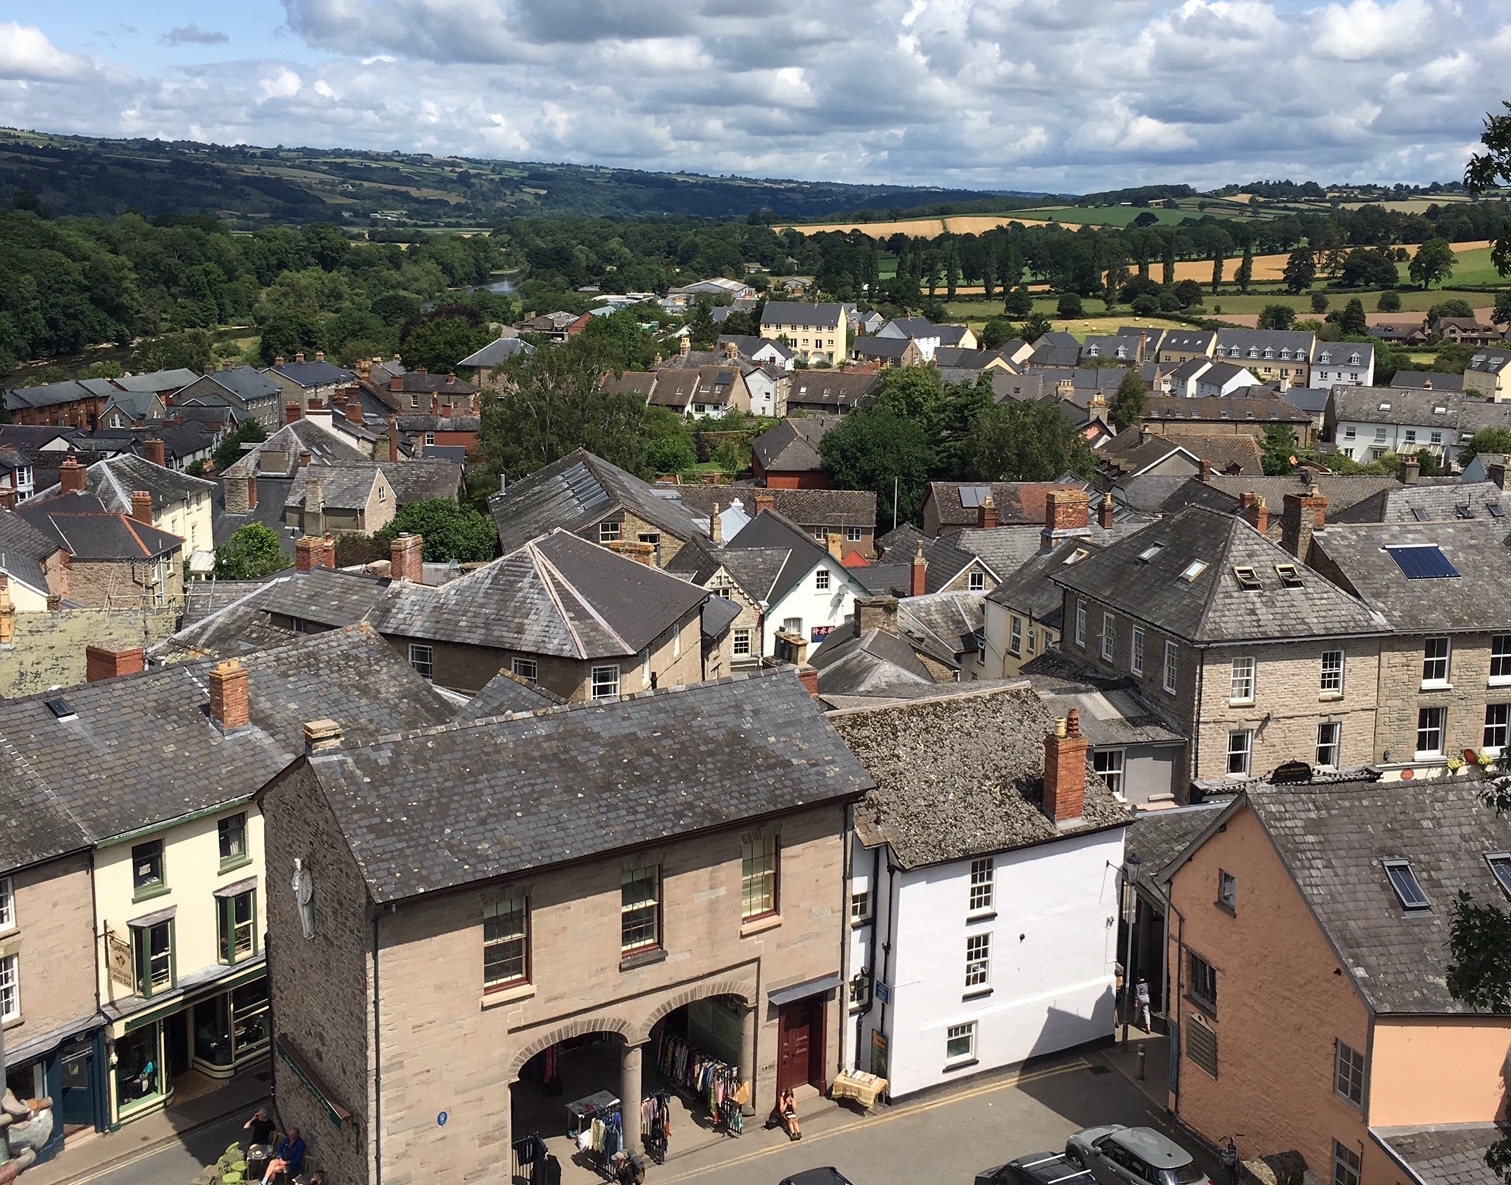 Hay-on-Wye has much to offer visitors to the area.